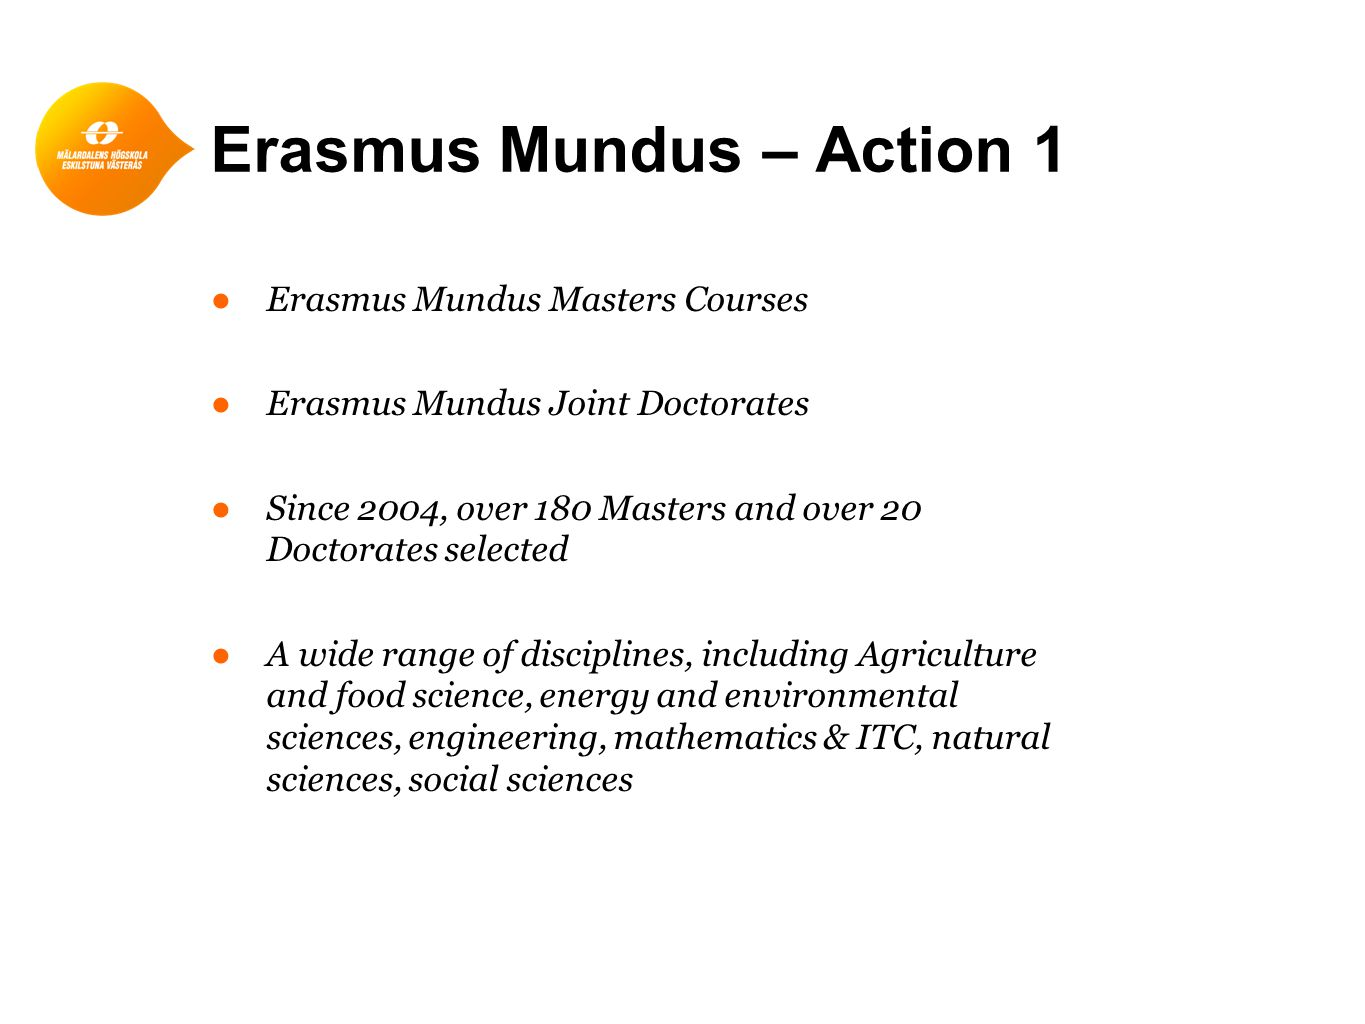 Erasmus Mundus – Action 1 ●Erasmus Mundus Masters Courses ●Erasmus Mundus Joint Doctorates ●Since 2004, over 180 Masters and over 20 Doctorates selected ●A wide range of disciplines, including Agriculture and food science, energy and environmental sciences, engineering, mathematics & ITC, natural sciences, social sciences